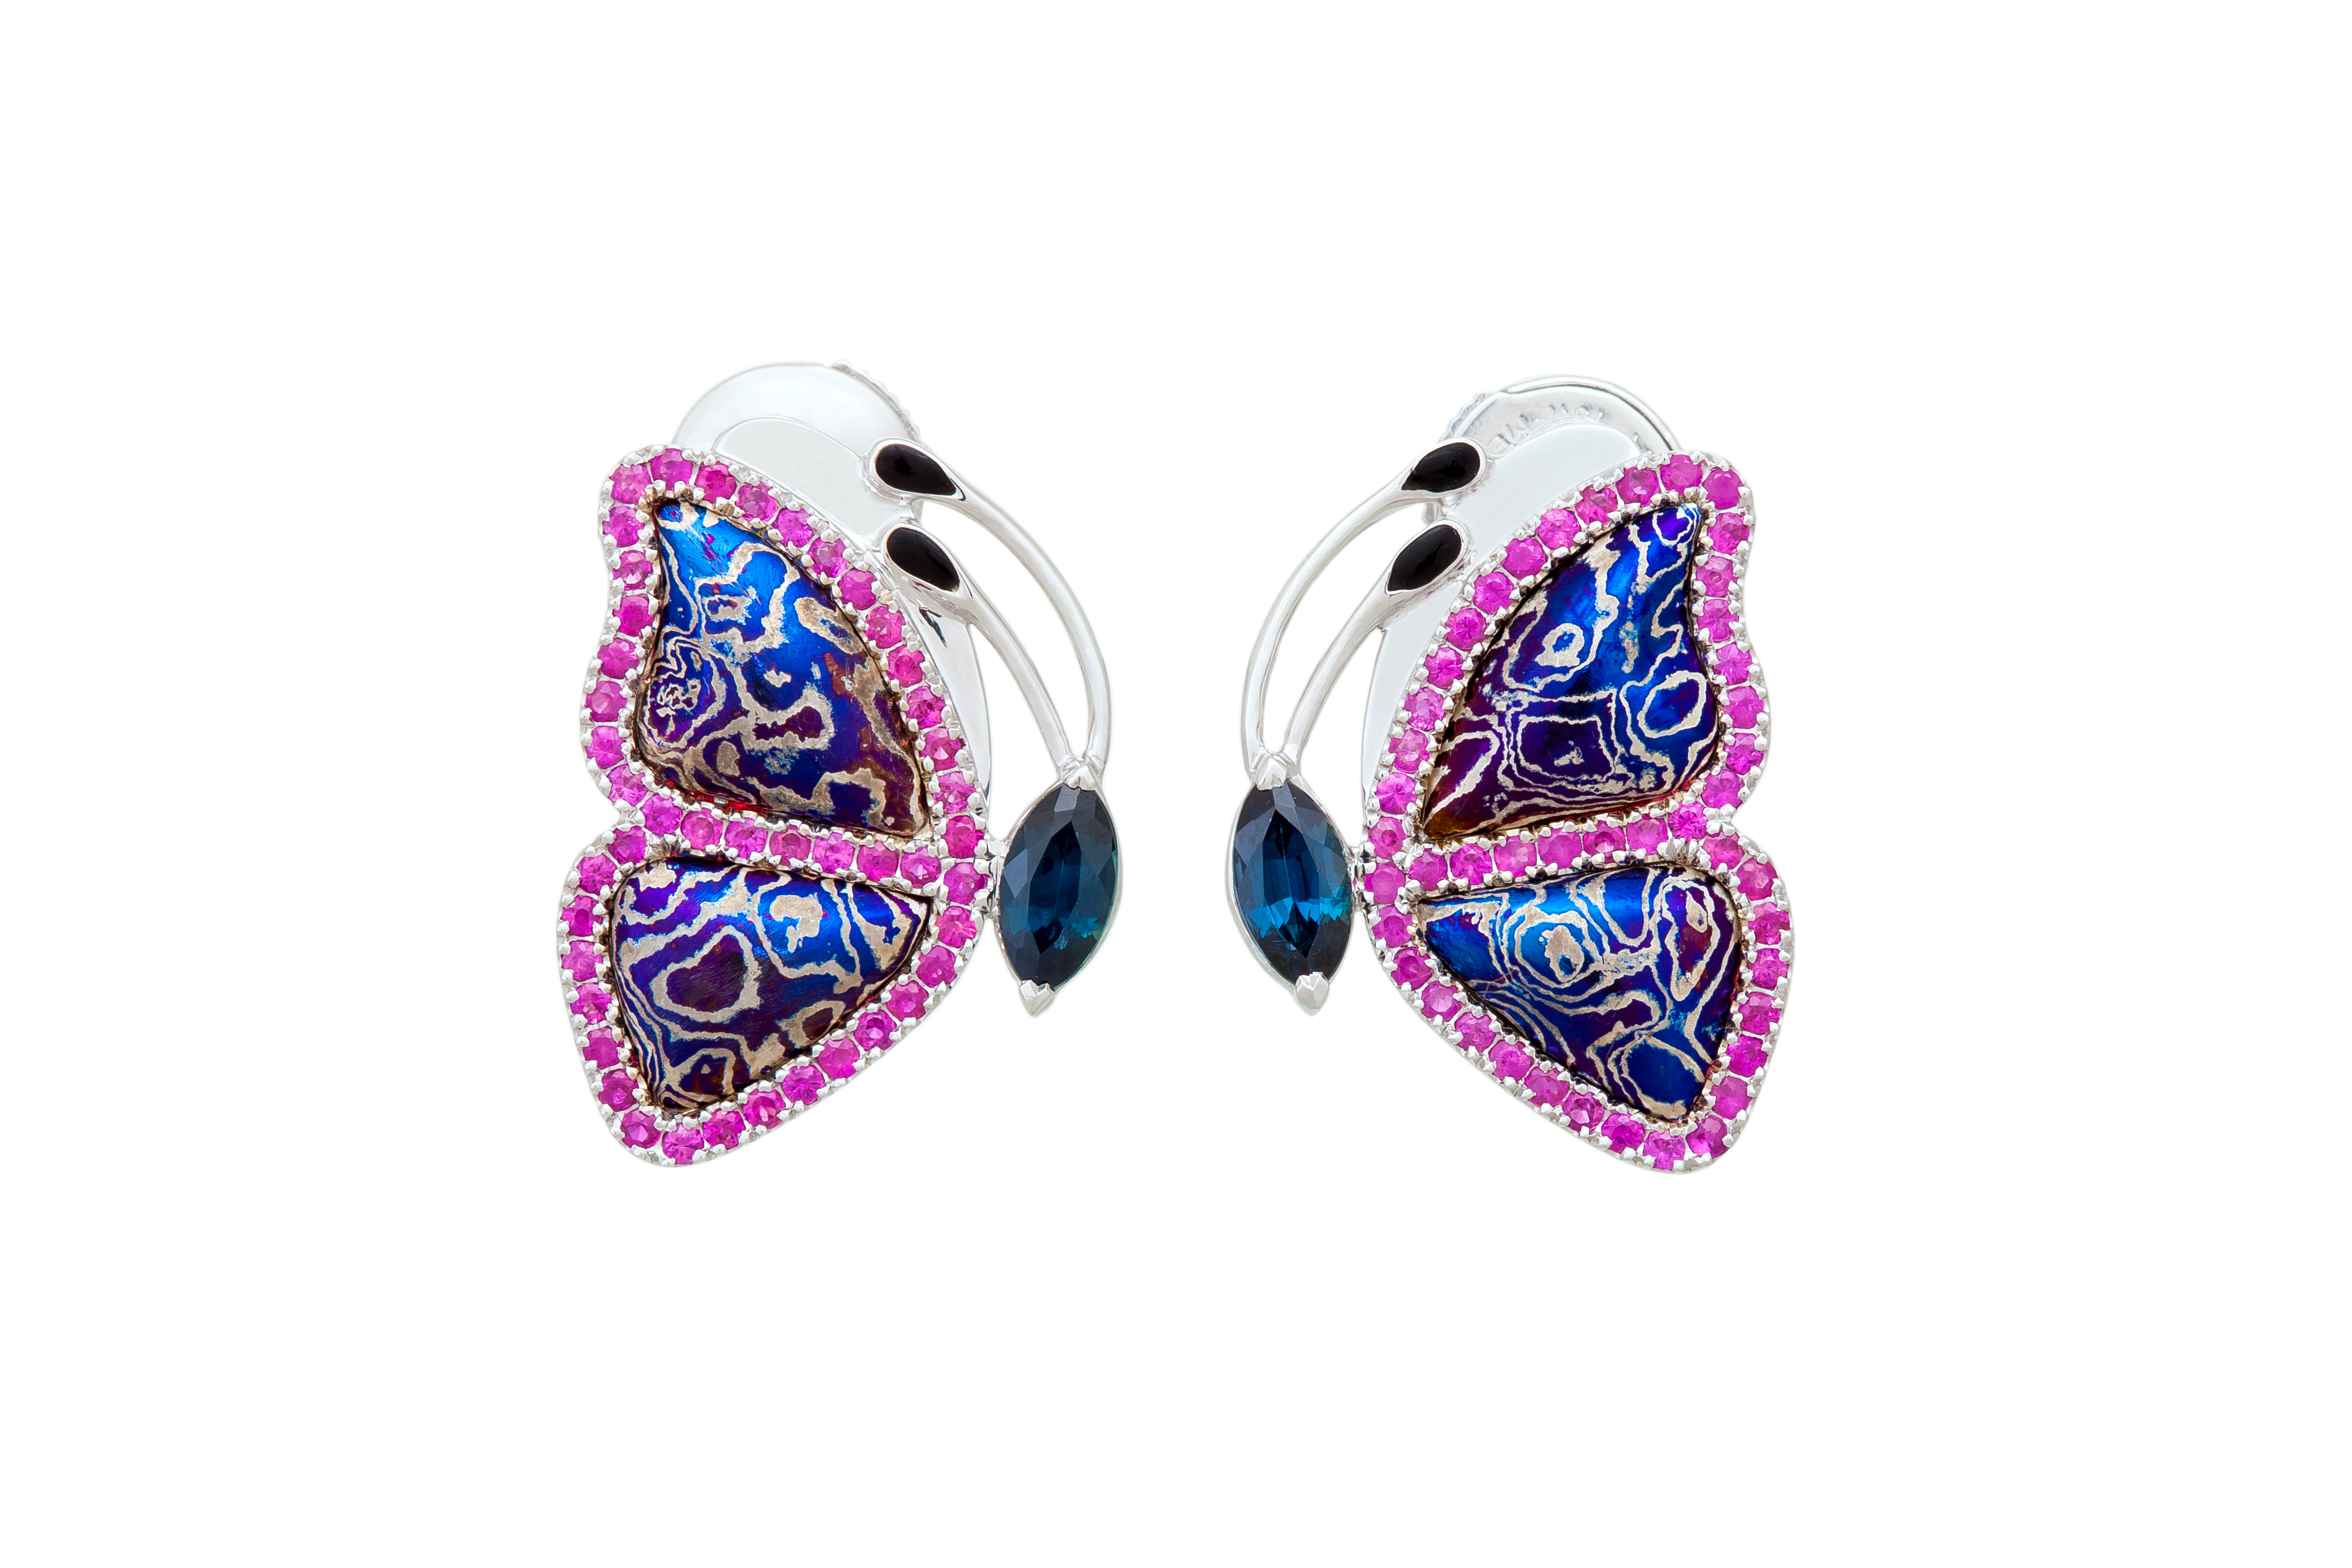 mariposa-earrings-2-1